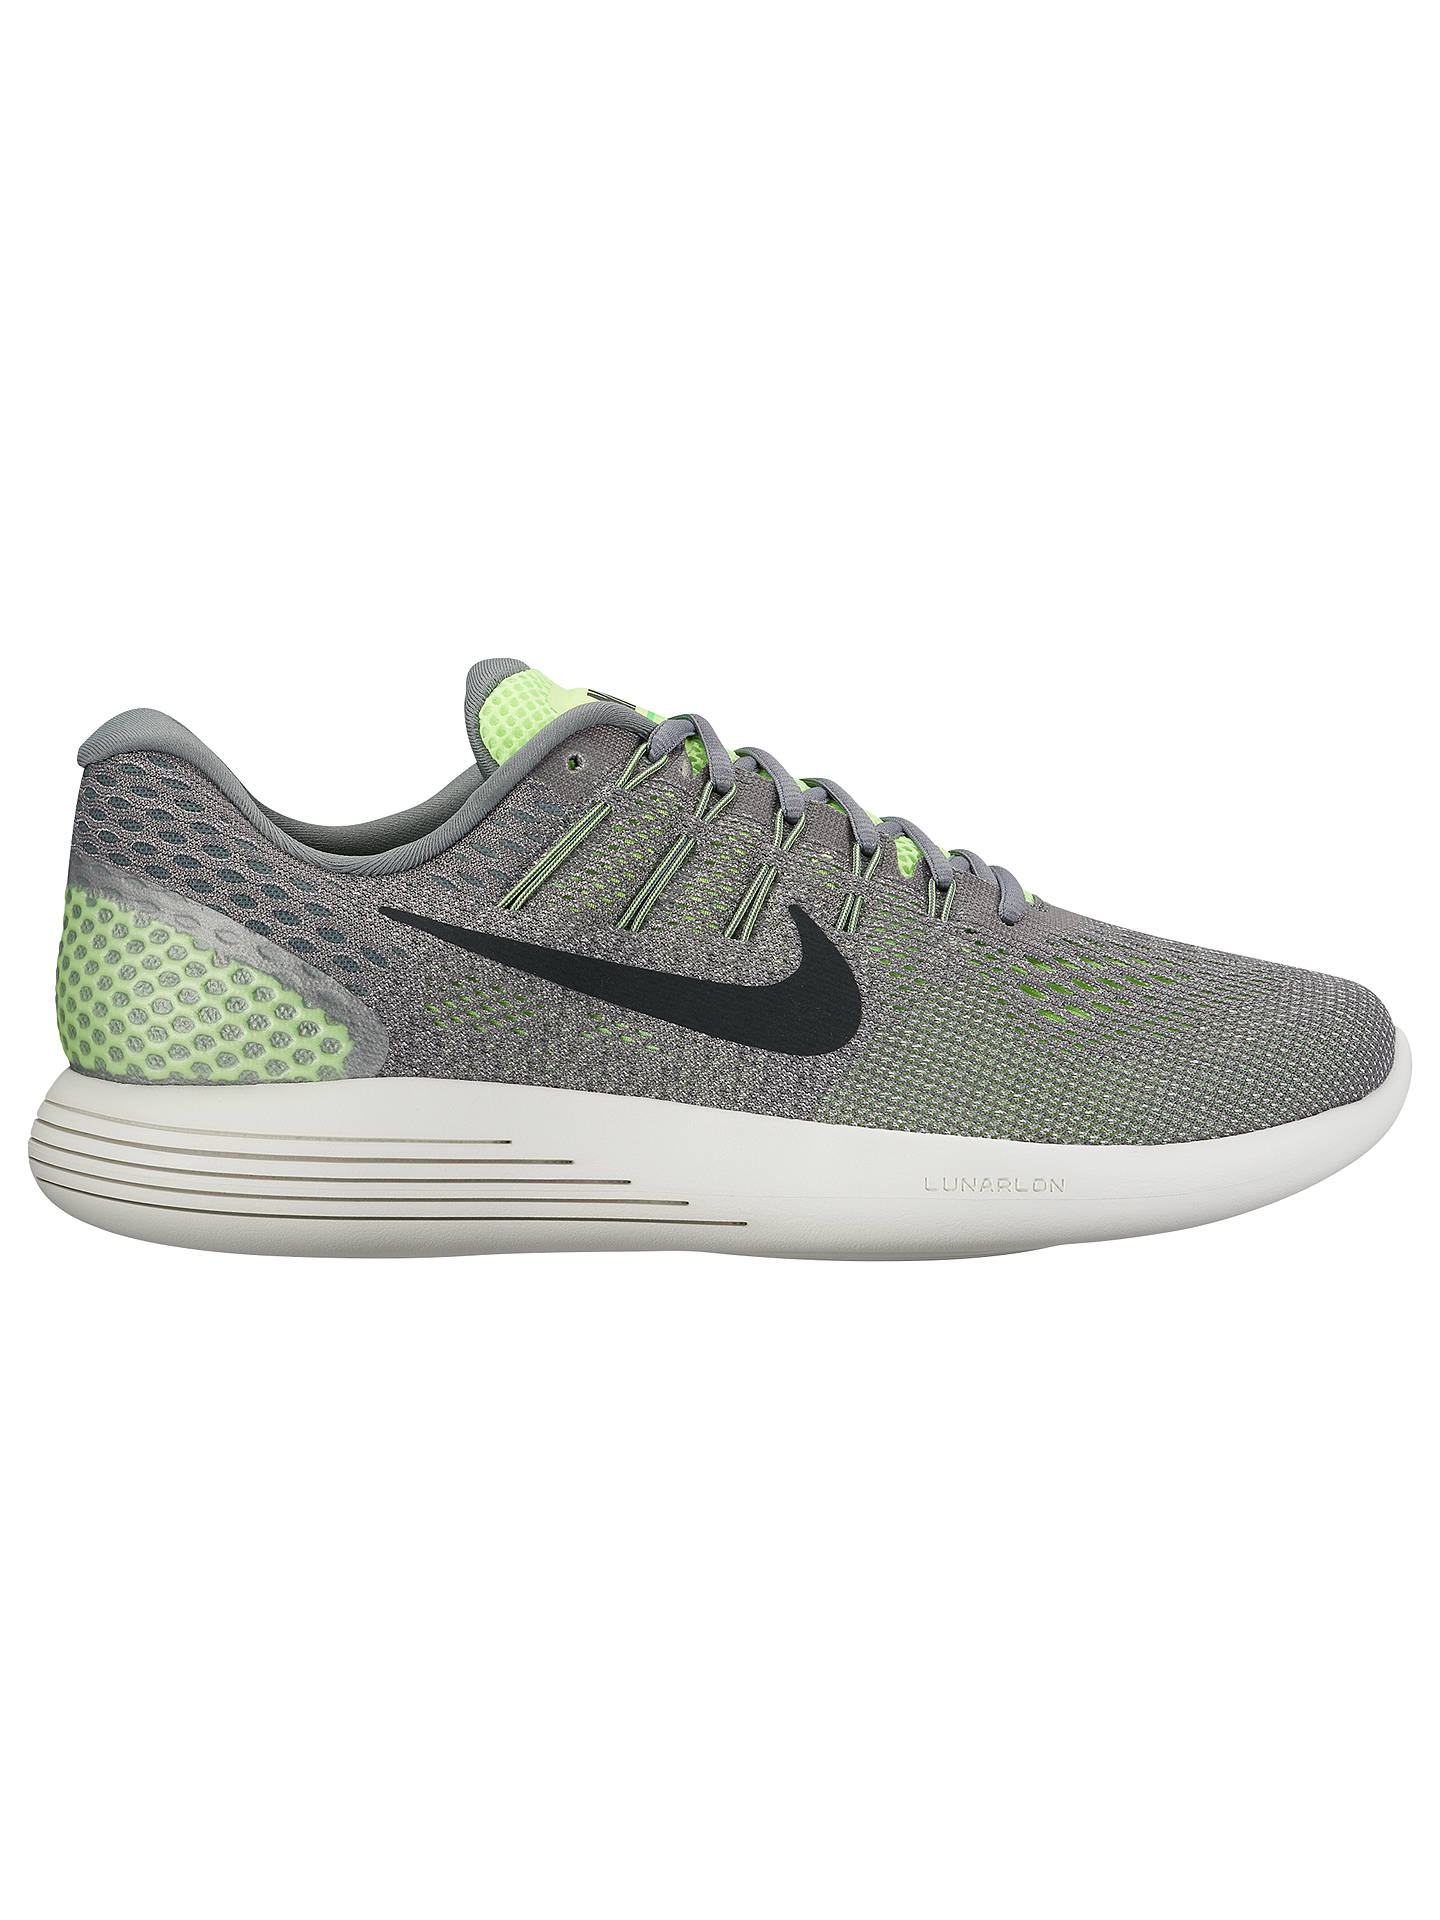 quality design 85f93 14283 ... real buynike lunarglide 8 mens running shoes ghost green cool grey 7  online at 38218 fb2c5